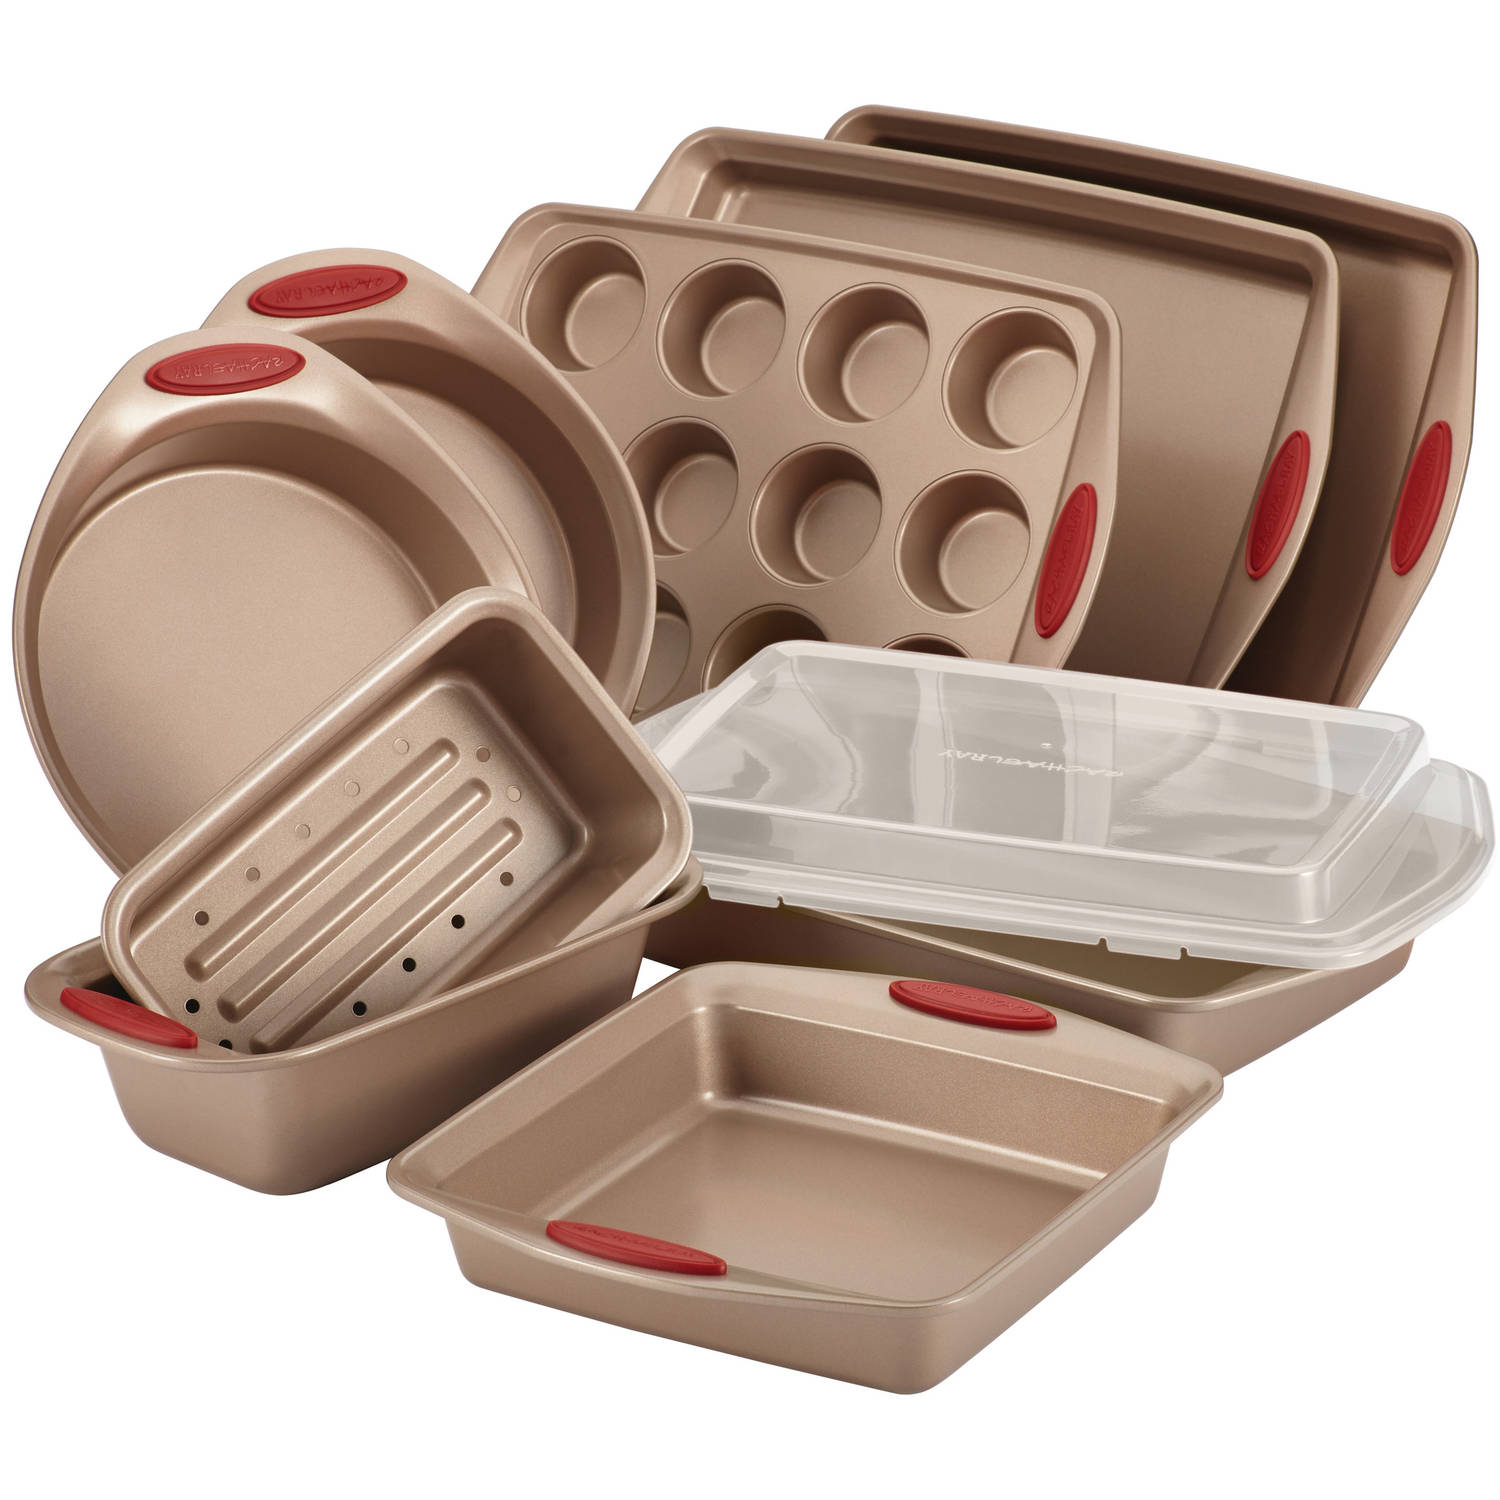 Set Da Cucina Exclusive Rachael Ray Cucina Nonstick Bakeware 10 Pc Set Brown With Red Handles